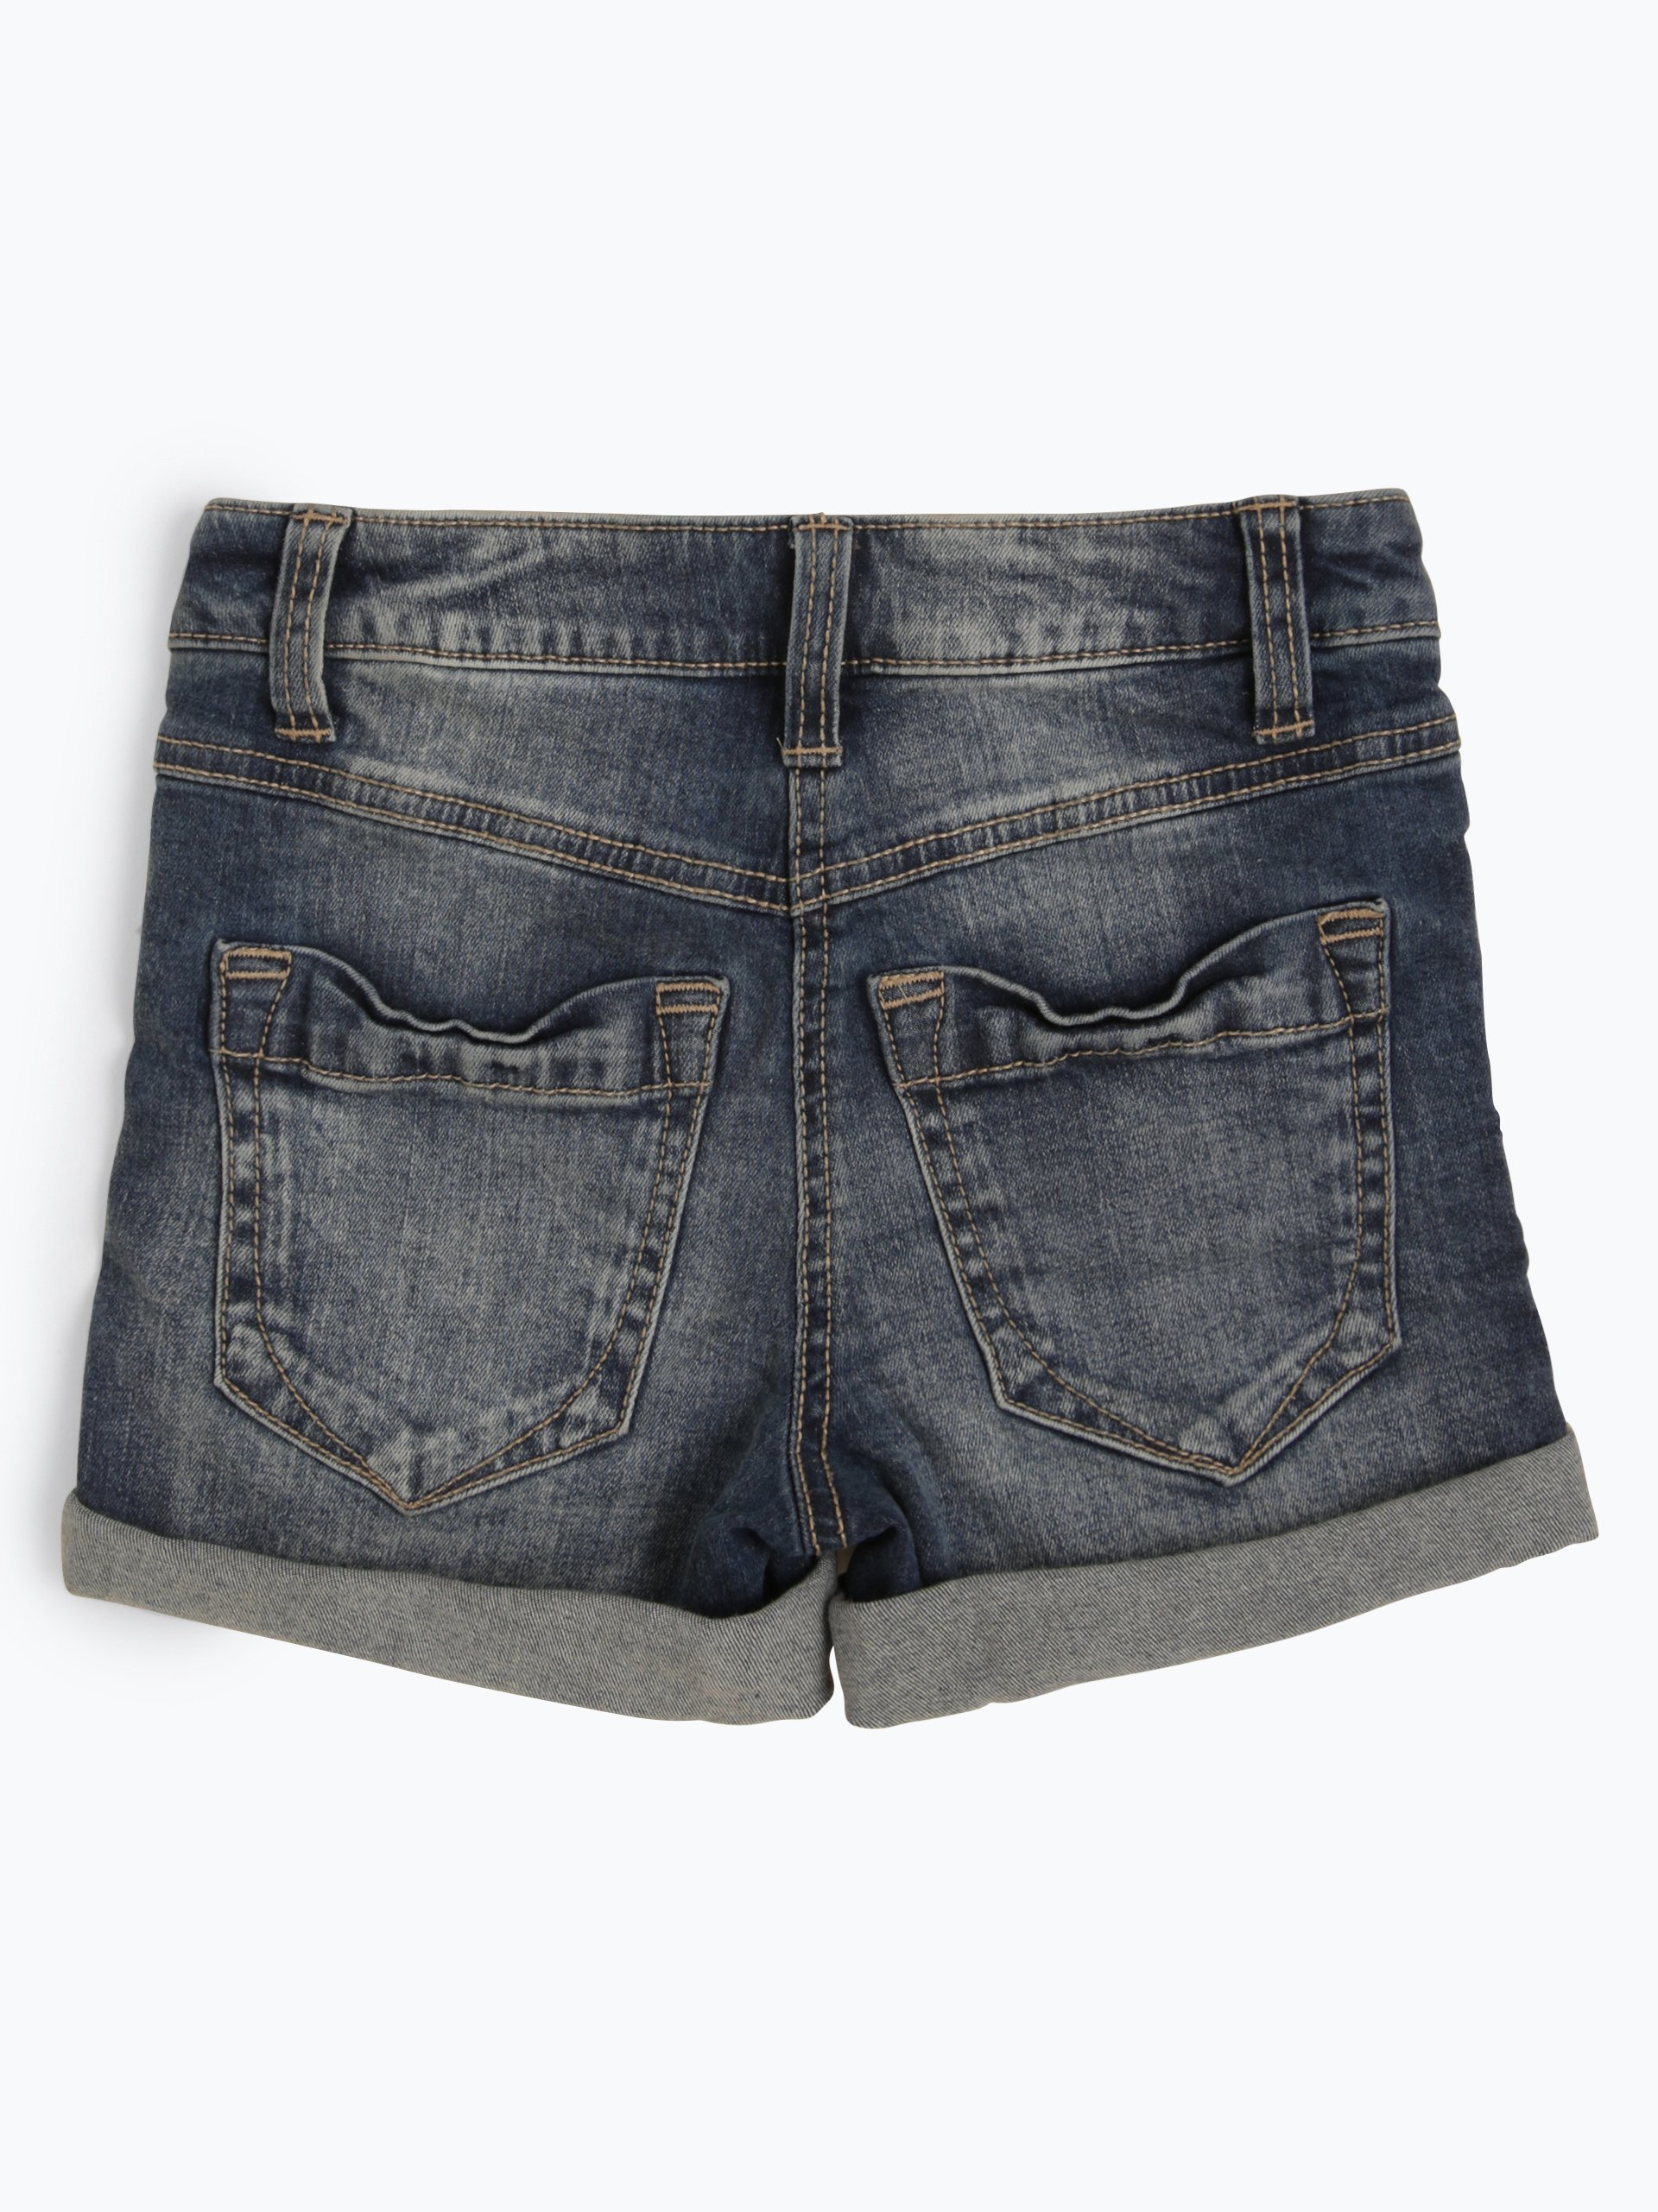 s.Oliver Casual Mädchen Jeansshorts